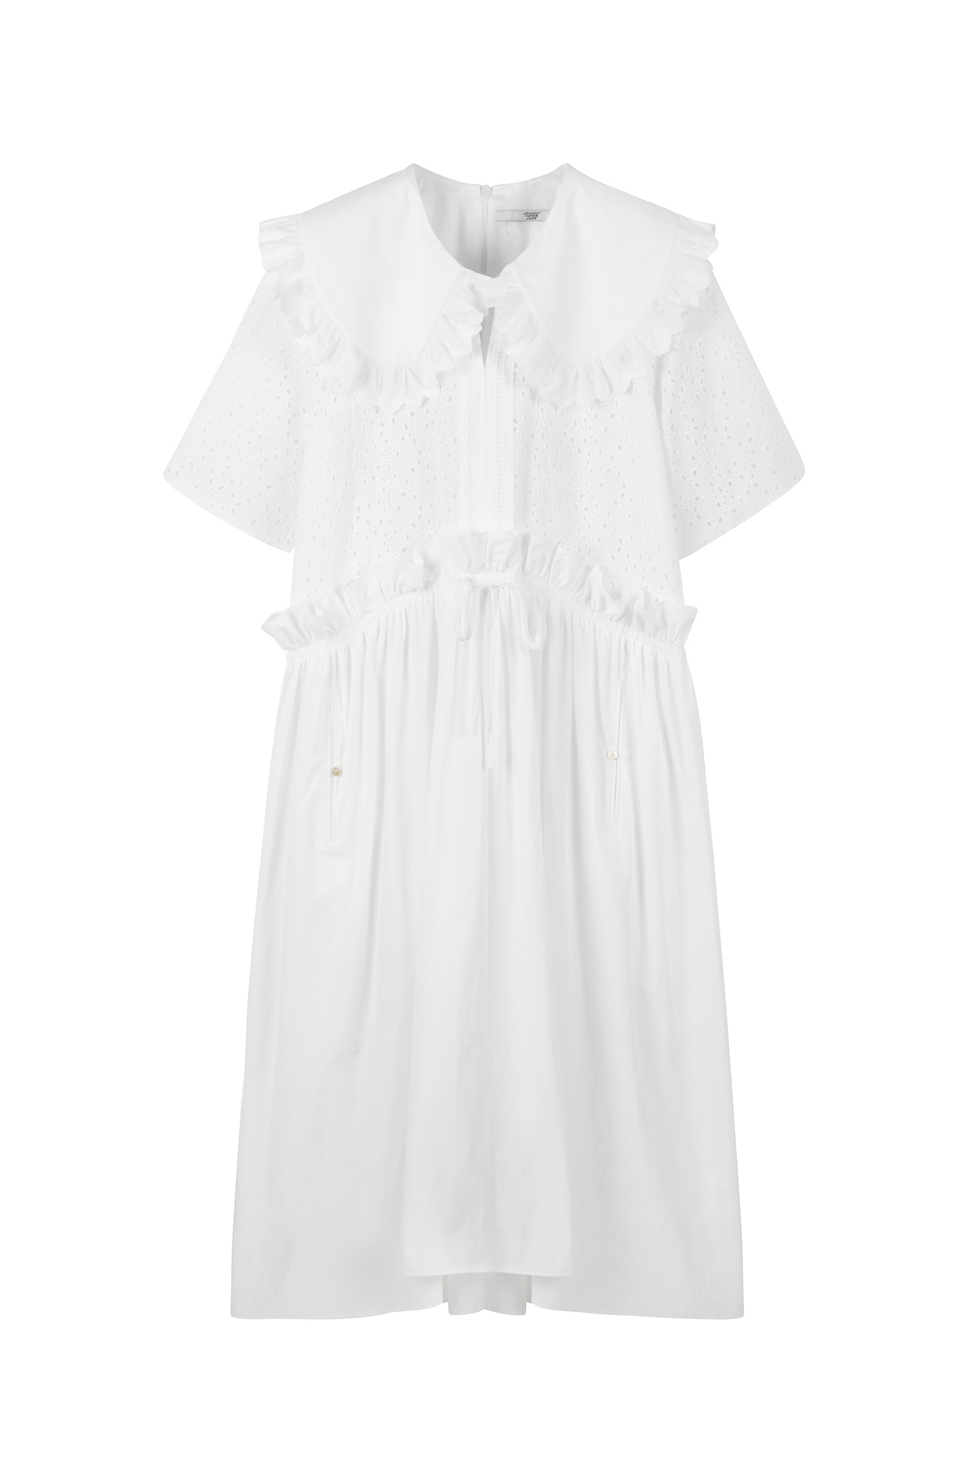 OVERSIZED BRODERIE DRESS - WHITE